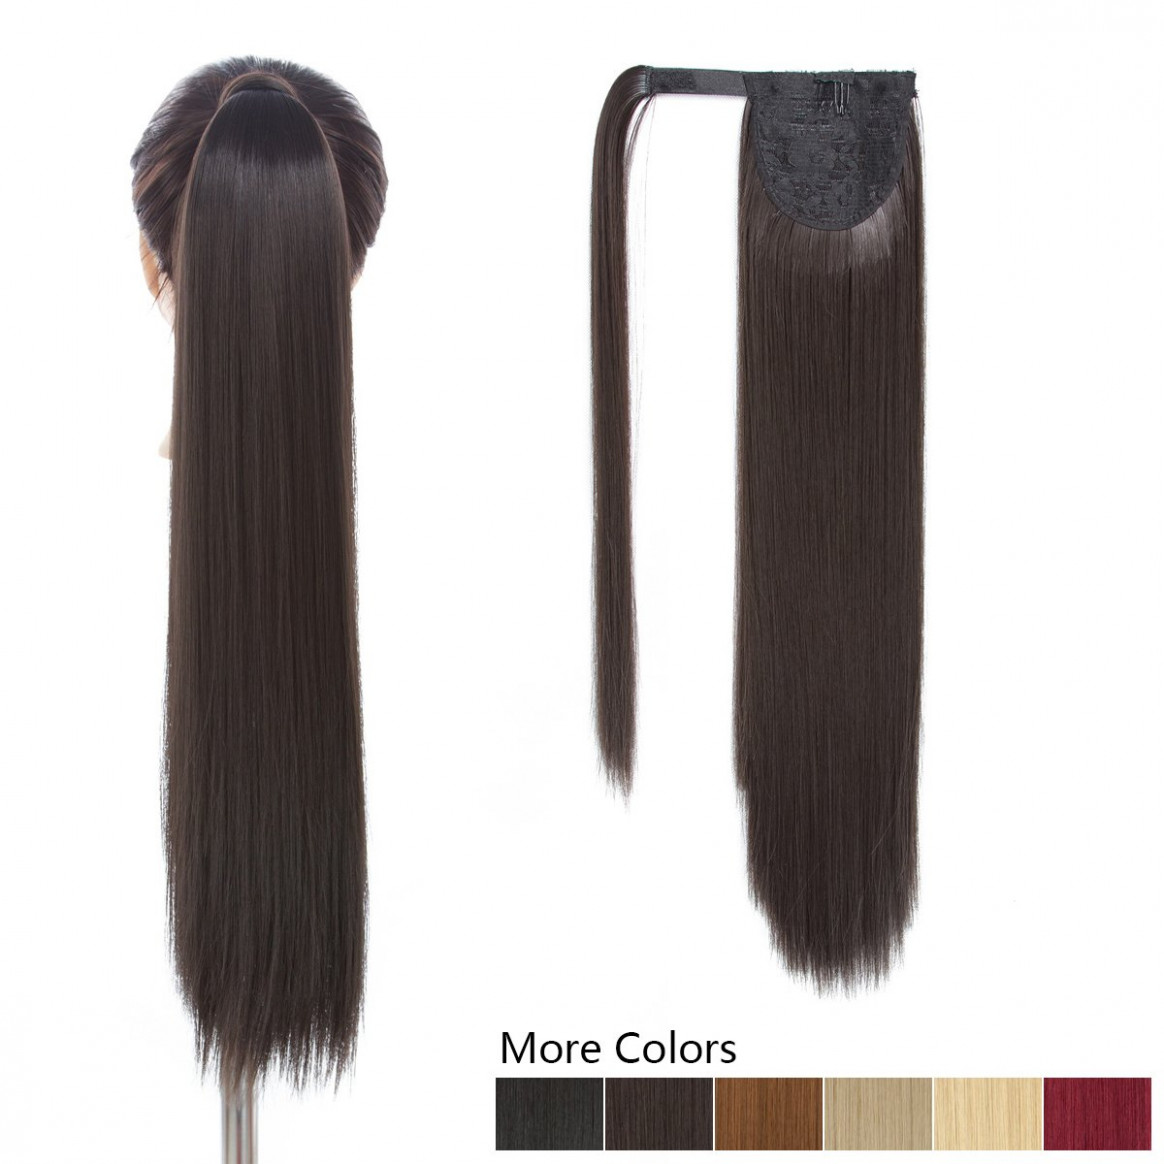 122 inch long ponytail hair extension dark brown 12 piece hairpiece synthetic wrap around pony tail clip in hair extensions for girl lady woman (122inch